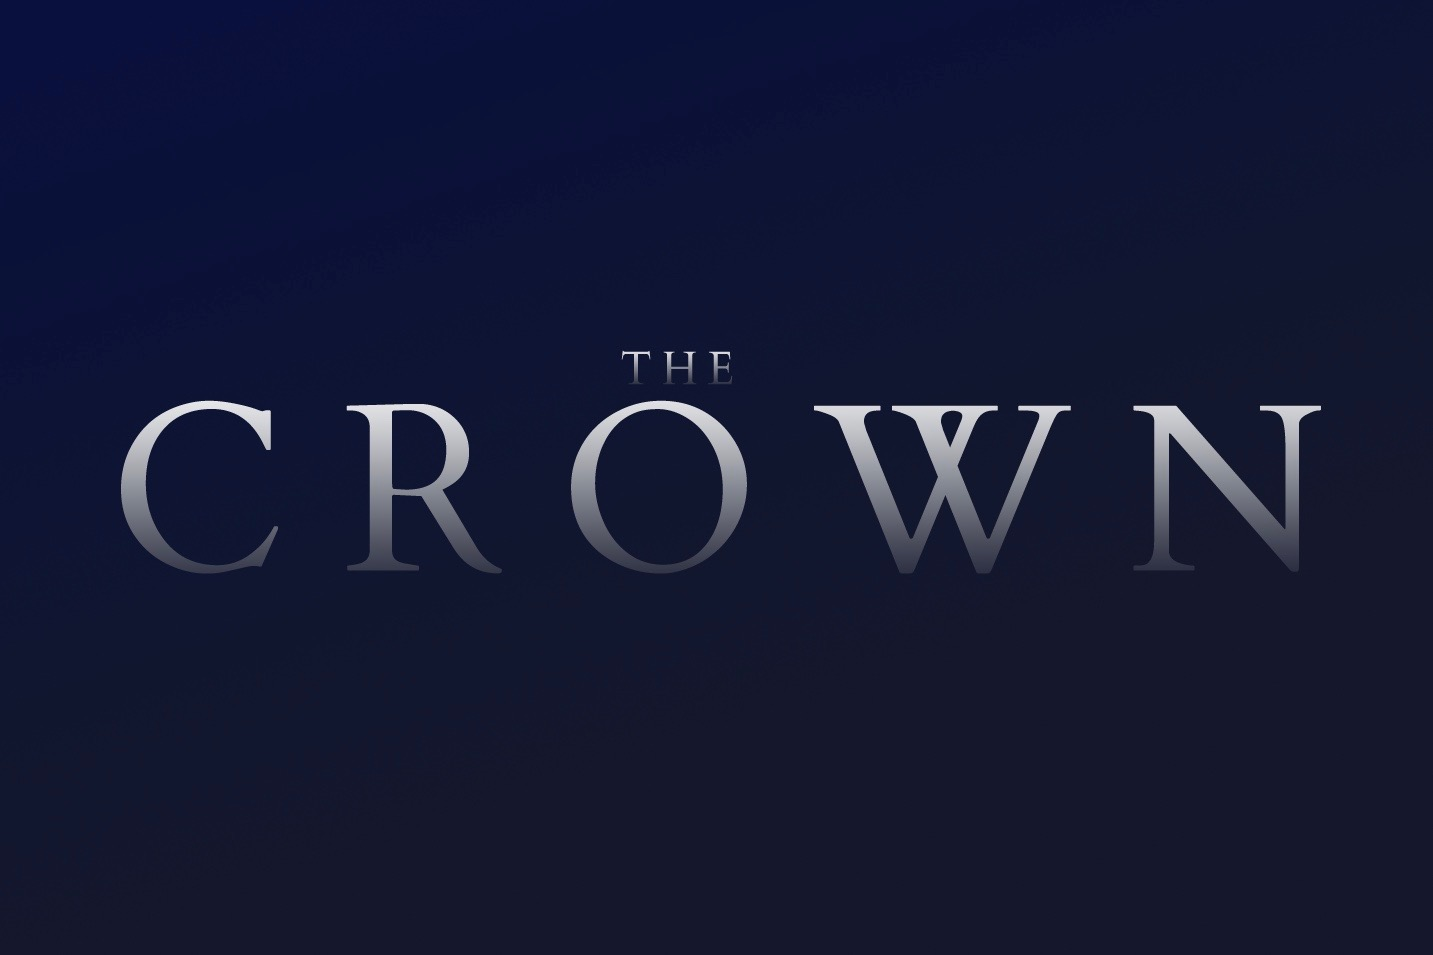 The Crown, first released in 2016, details the life of Queen Elizabeth II in a historical drama television series.